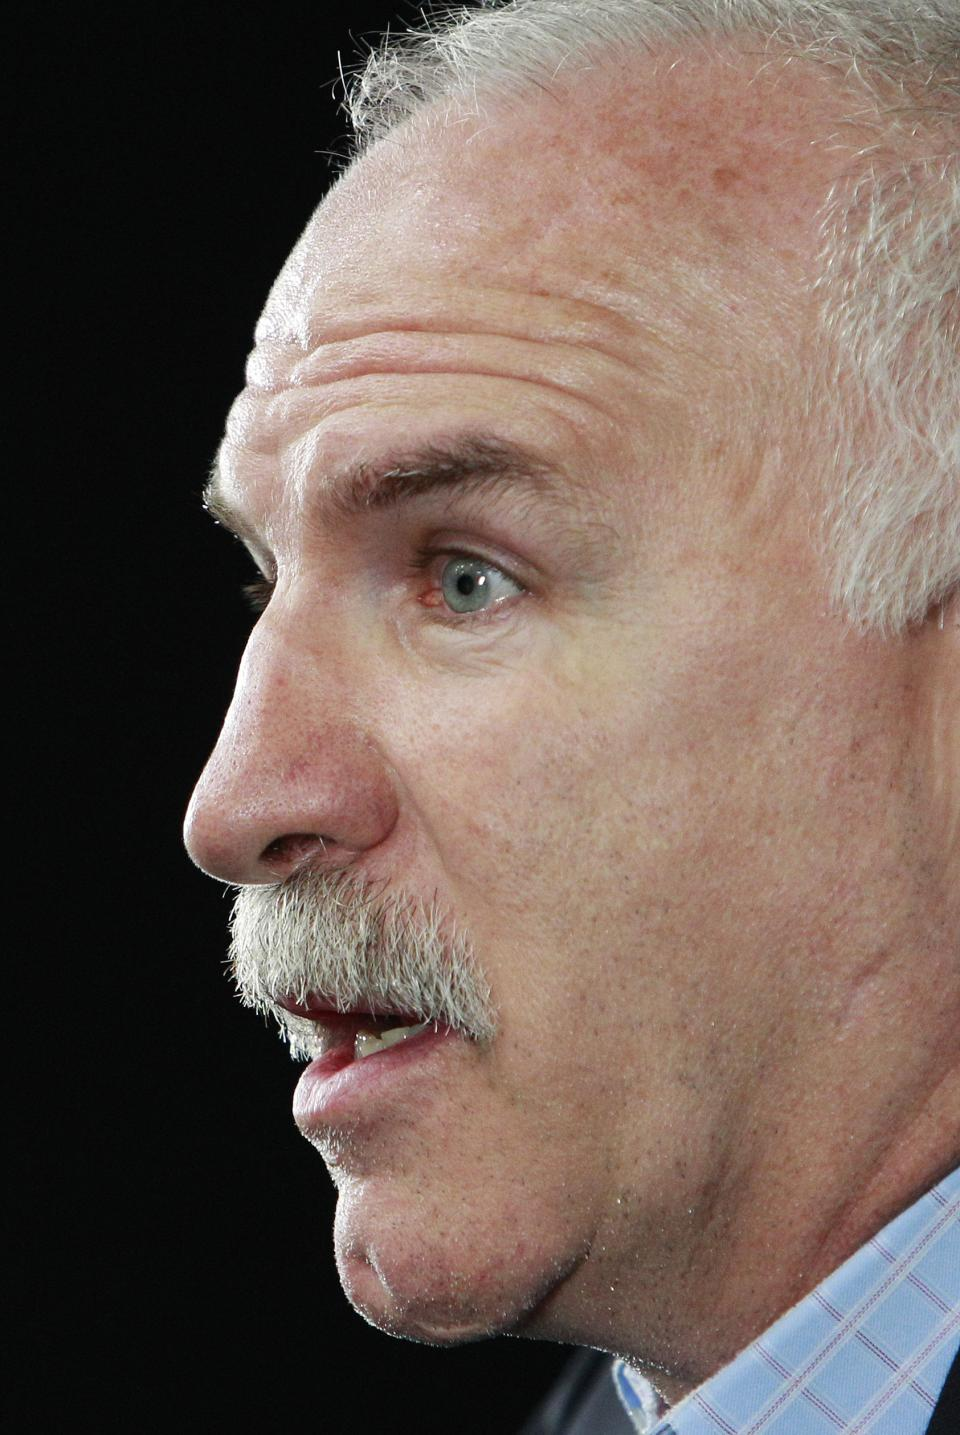 Chicago Blackhawks head coach Joel Quenneville answers a reporter's question during a media availability Sunday, June 23, 2013, in Boston. The Blackhawks will face the Boston Bruins in Game 6 of the NHL hockey Stanley Cup Final Monday night in Boston. (AP Photo/Bill Sikes)